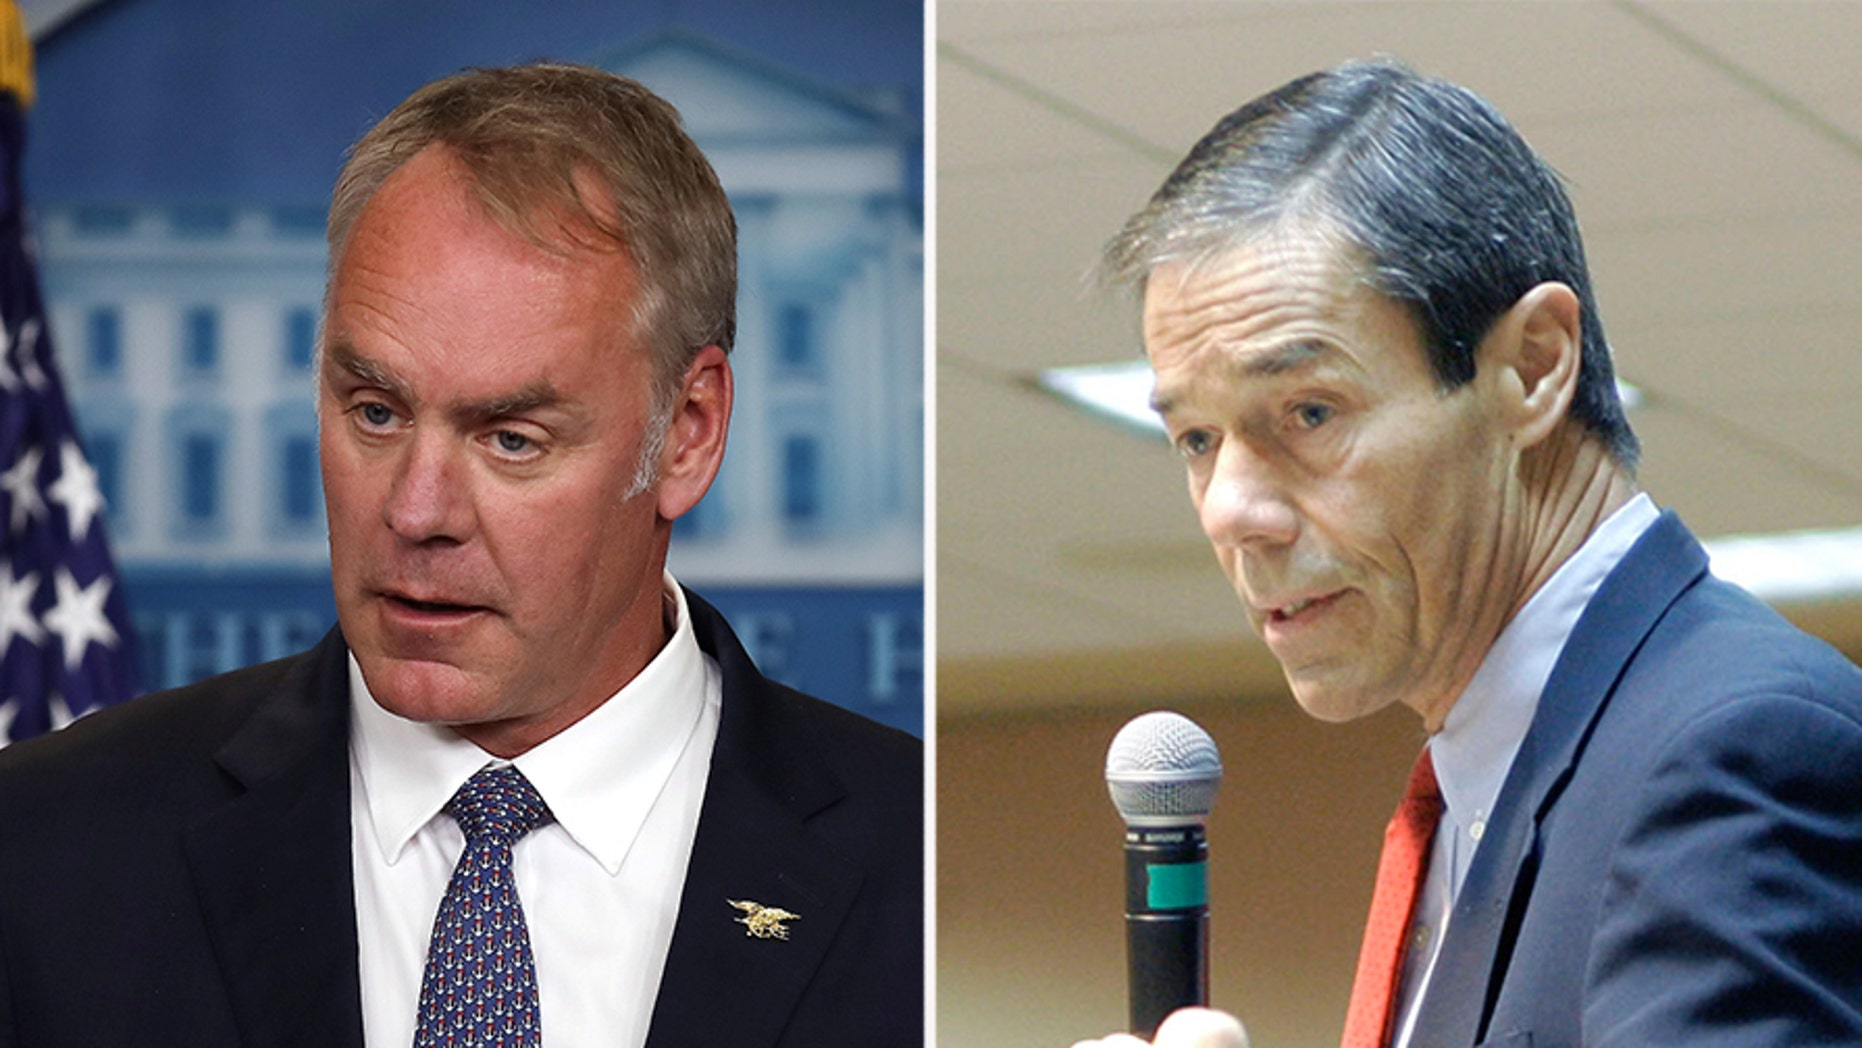 Former Governor of Alaska Tony Knowles (right) has resigned along with seven other members of the National Parks Service advisory board over claims that Department of Interior Secretary Ryan Zinke (left) had ignored their requests for a meeting.